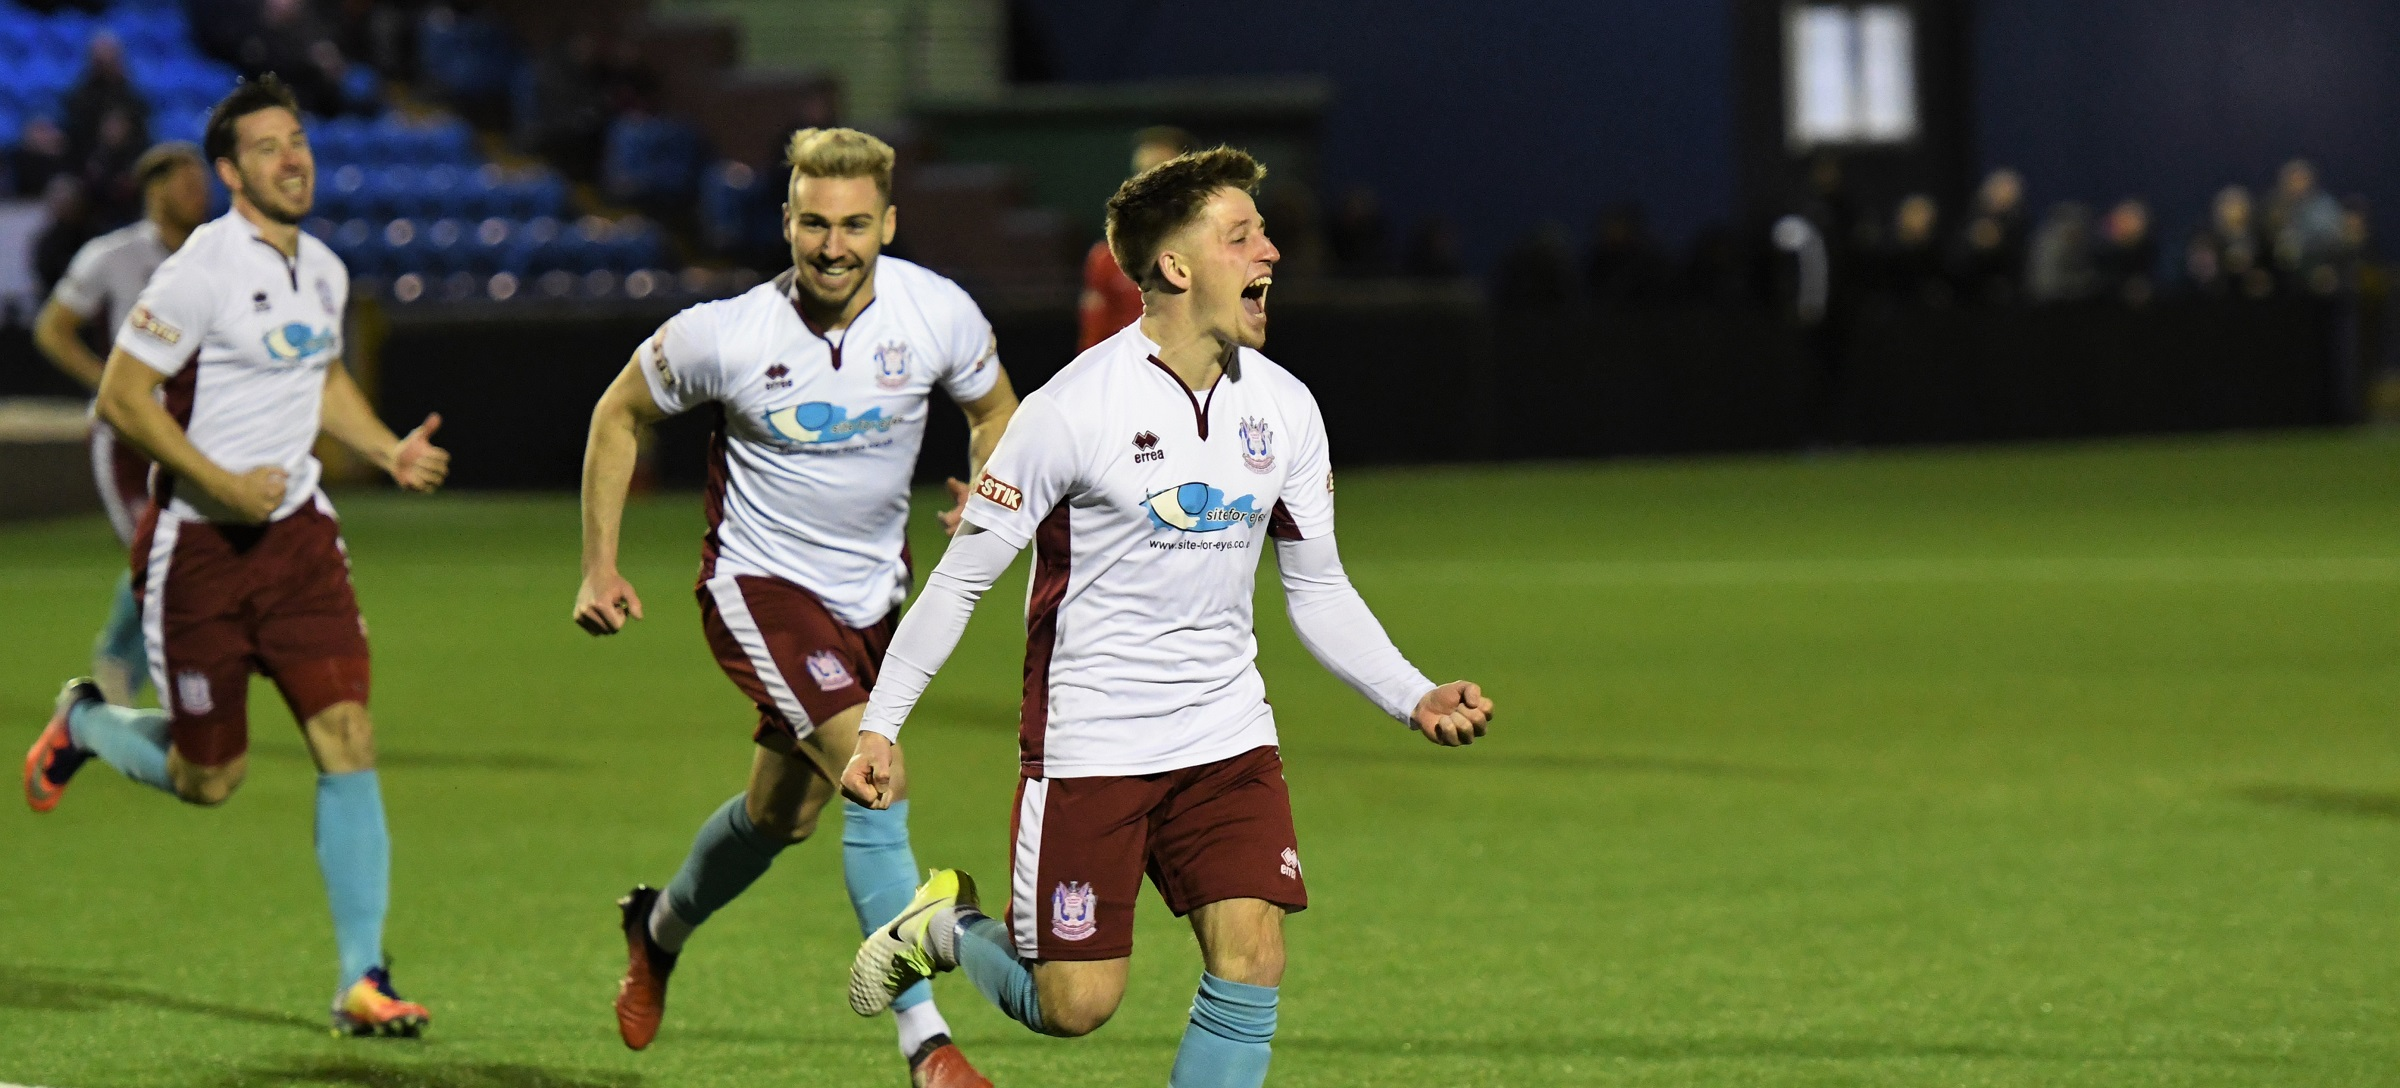 Hyde United 1-1 South Shields: Impressive Mariners stay top